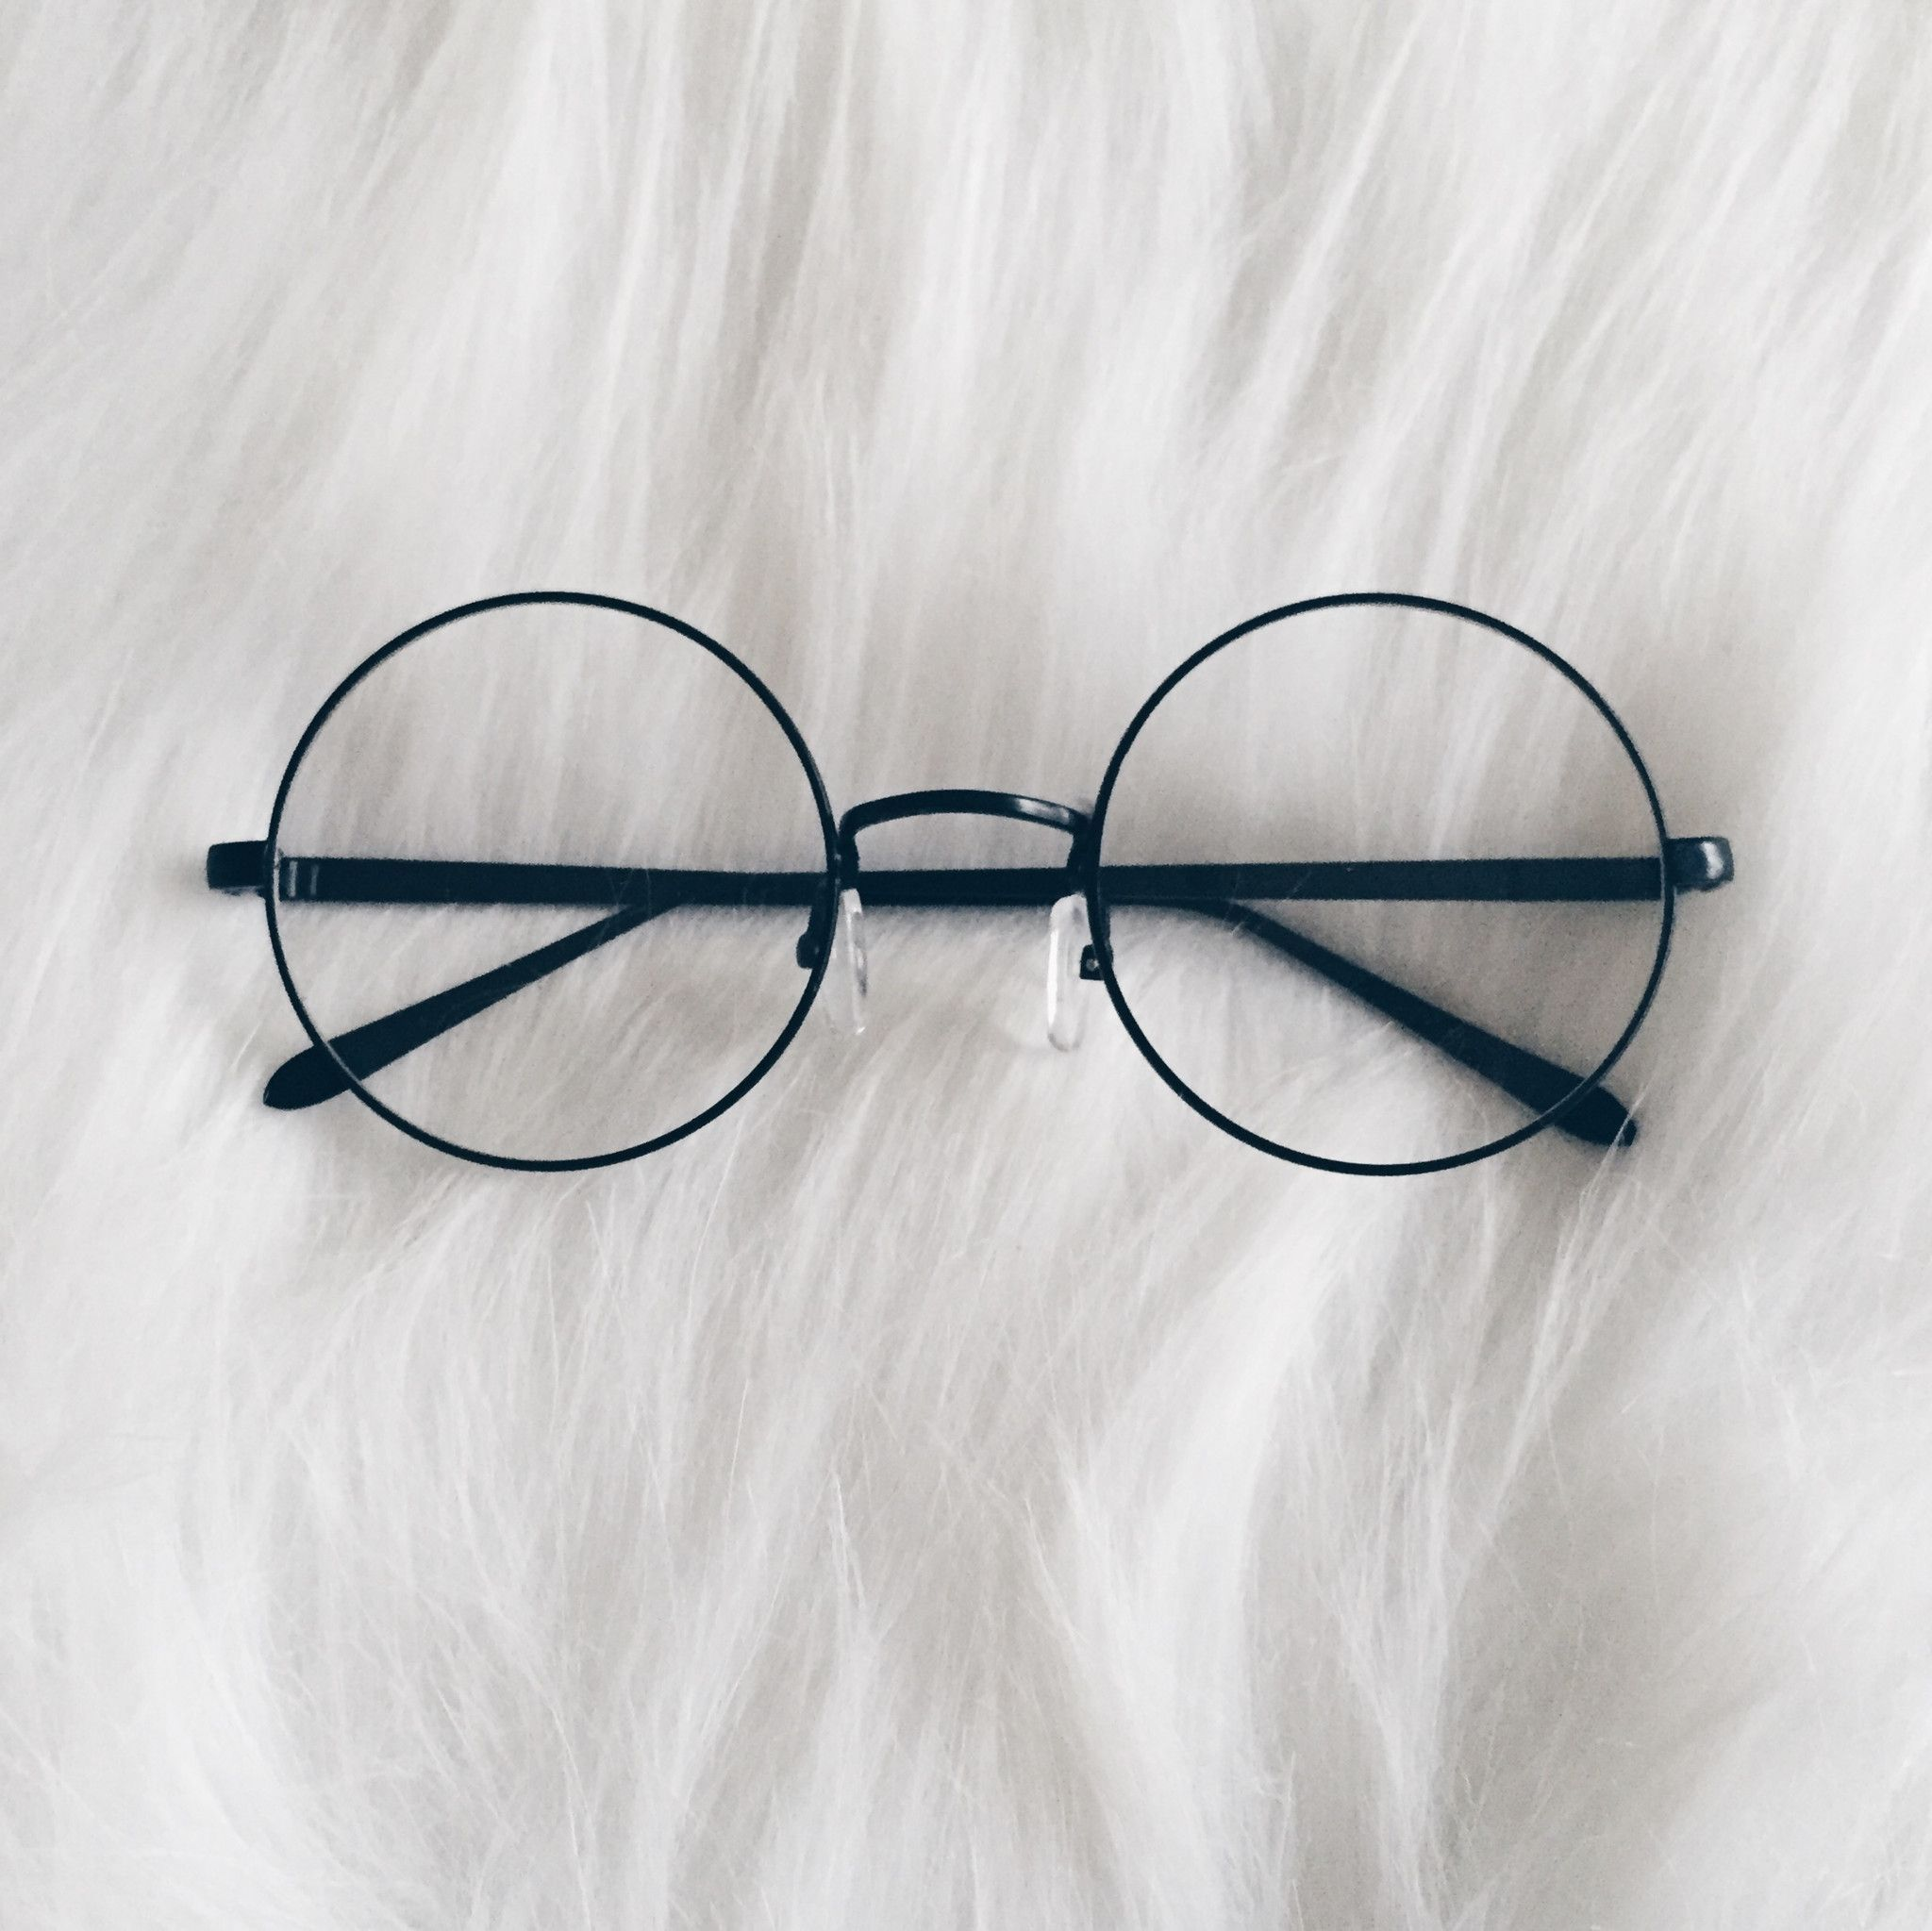 cd08a731a58 Harry Potter Glasses More